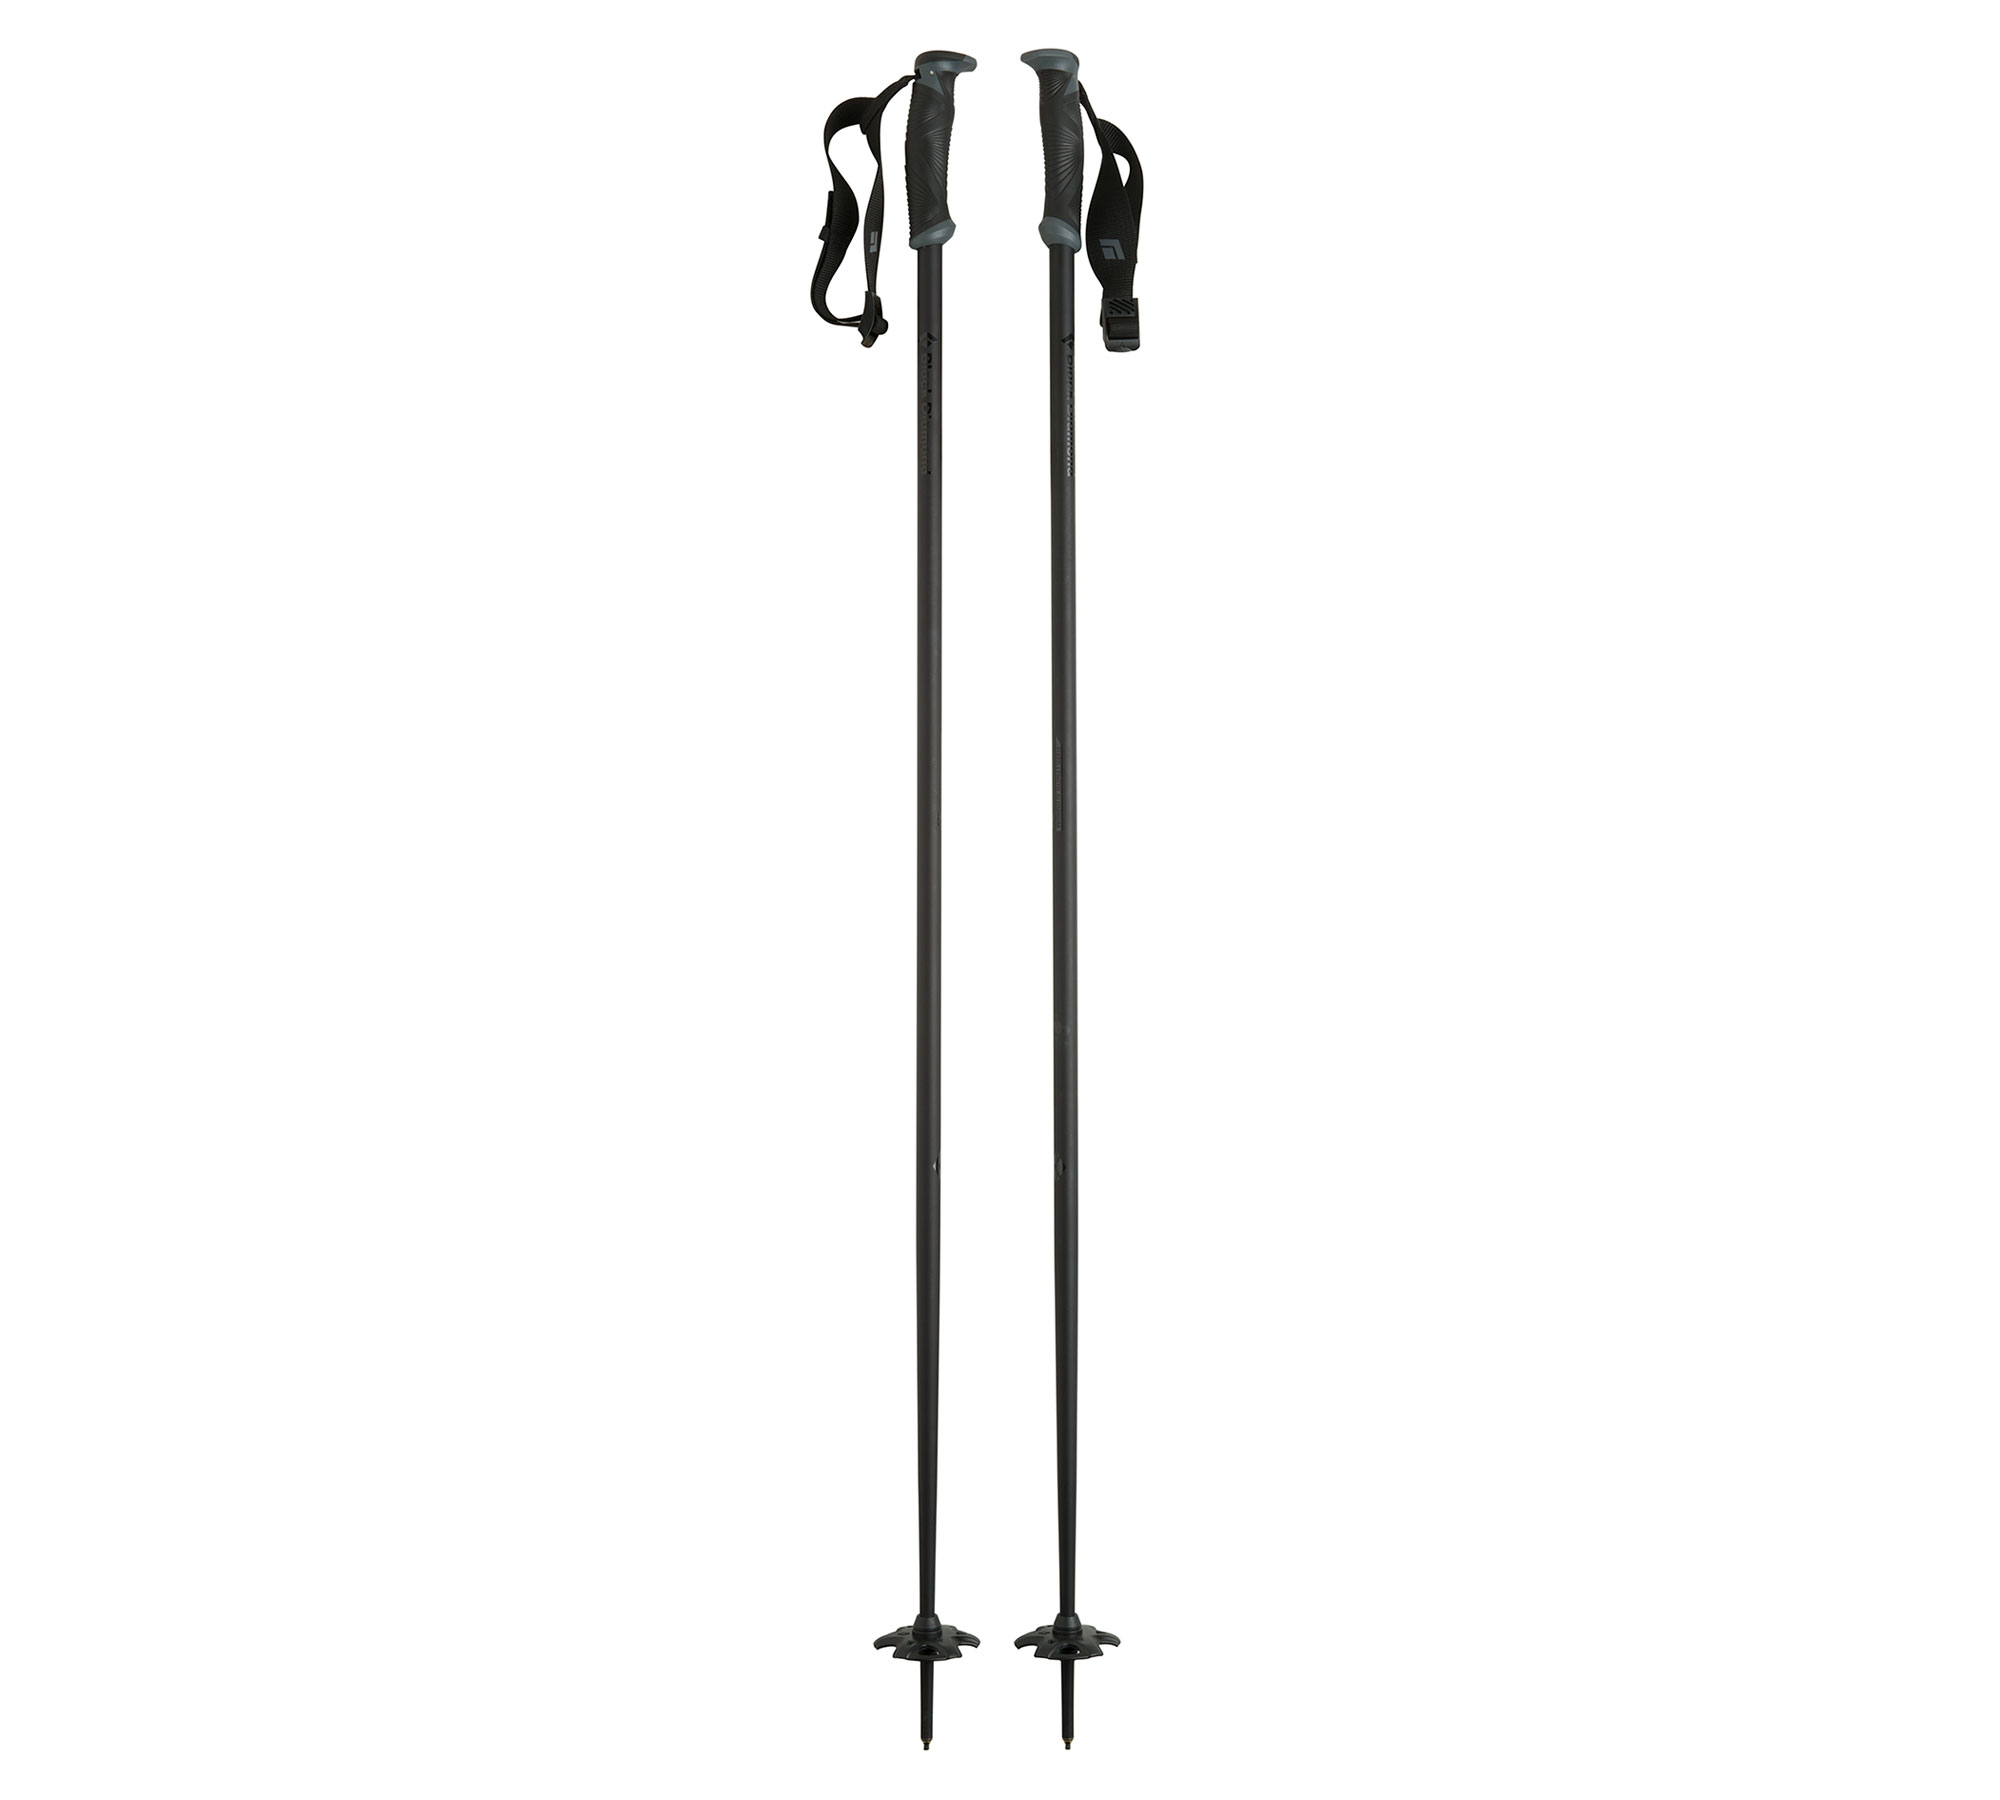 Black Diamond Fixed Length Aluminum Ski Poles Black-30